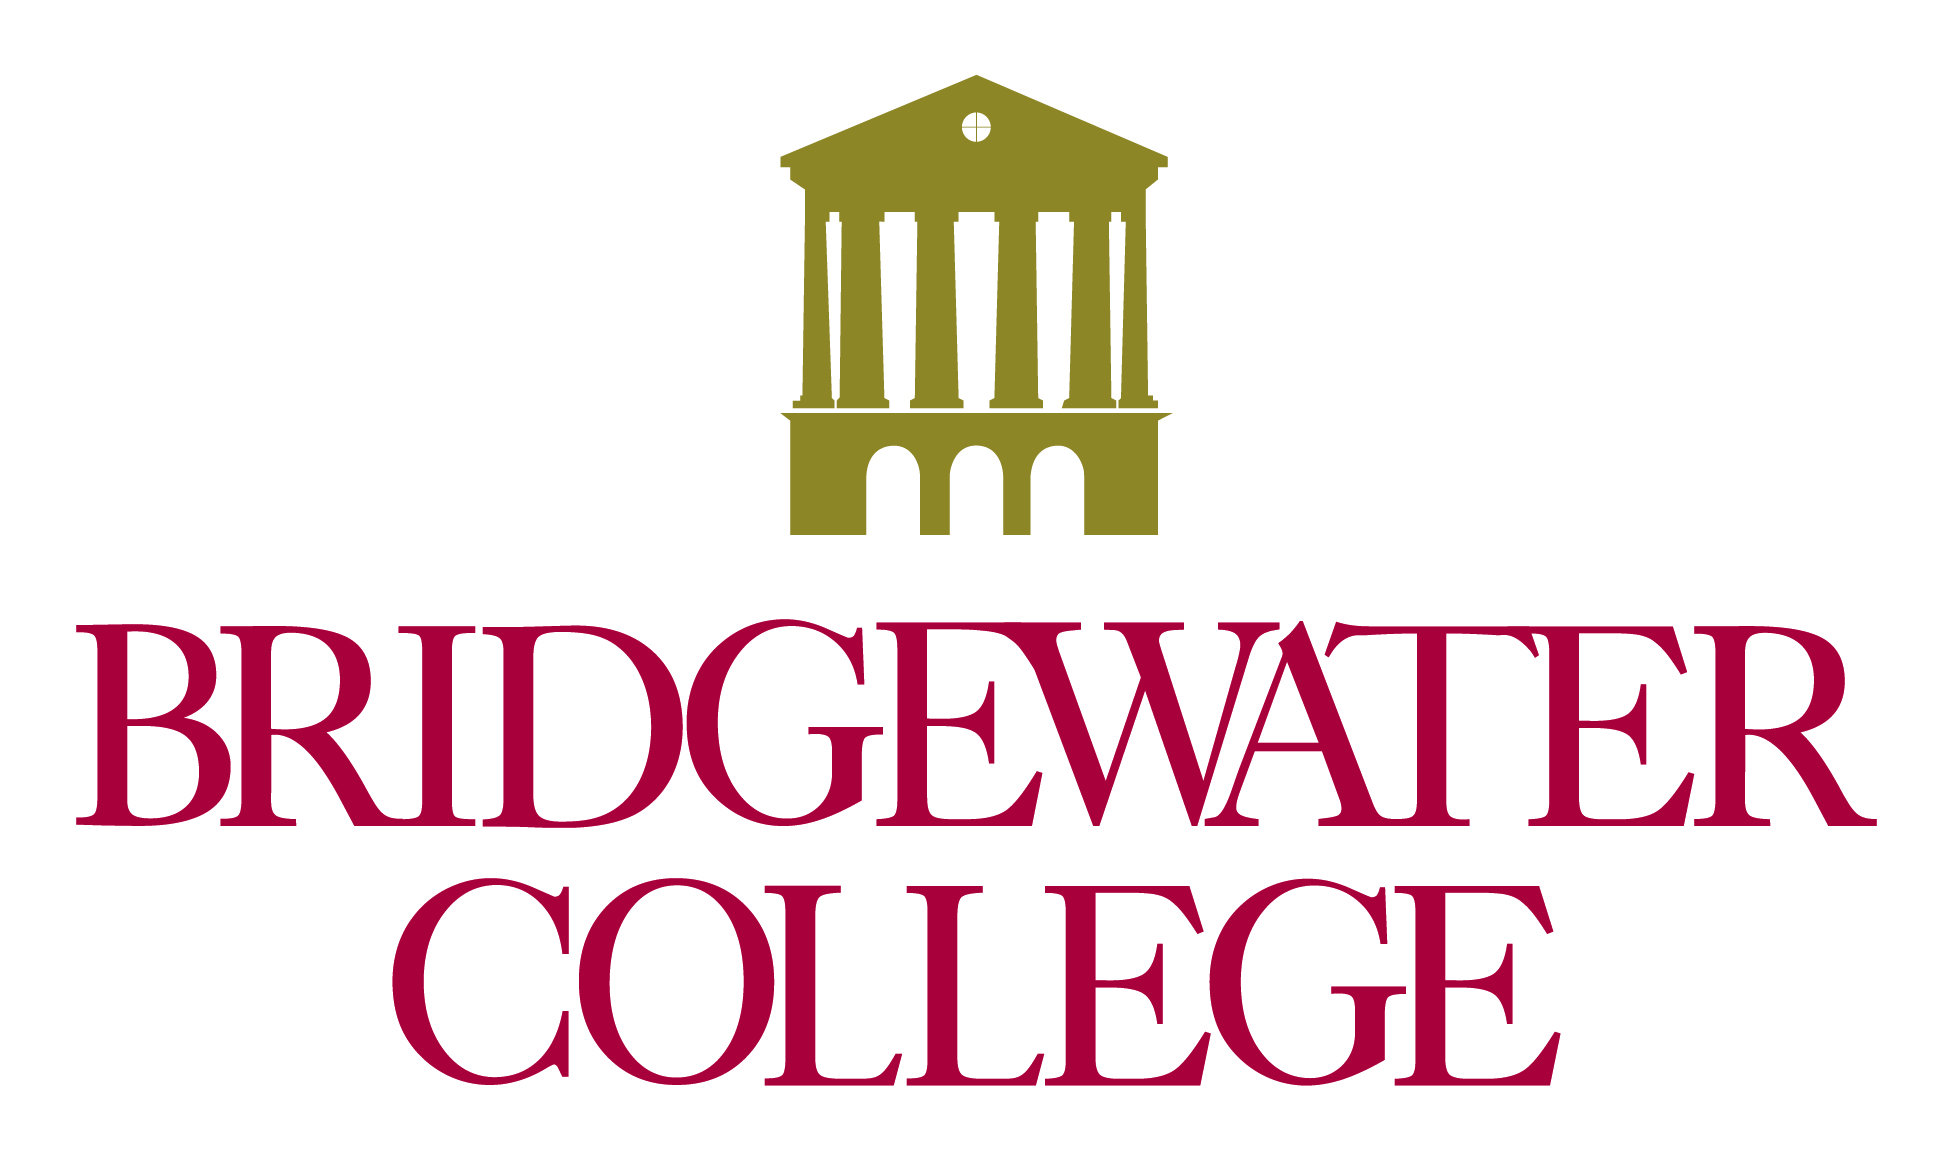 04 Bridgewater College.jpg